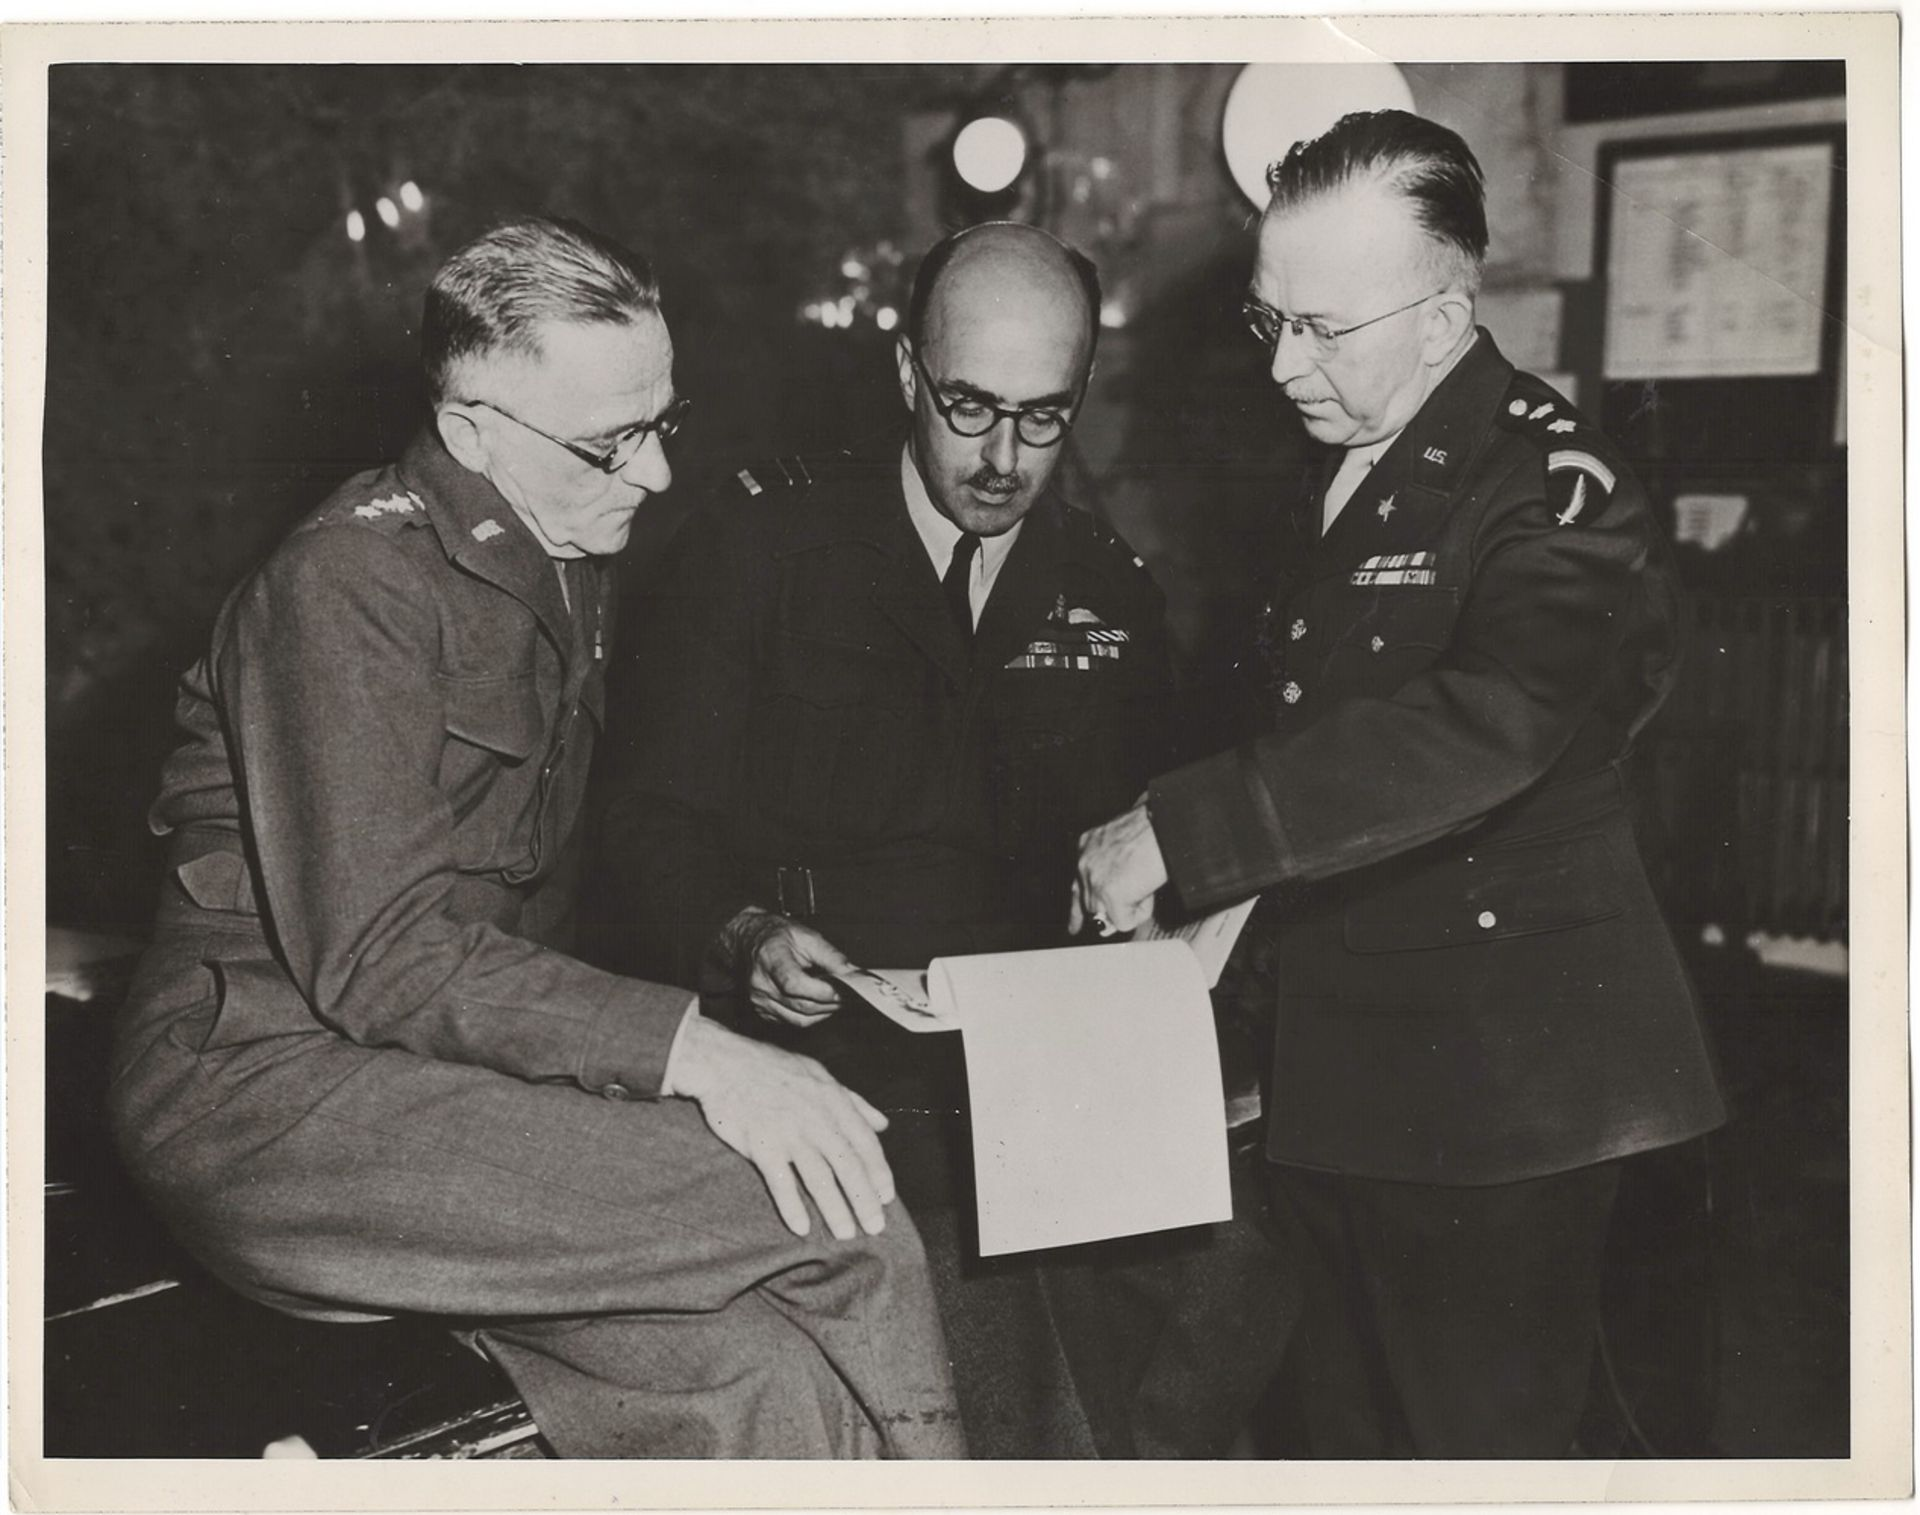 """Carl Spaatz, J. Robb and H. Bull at meeting in Reims"""". 5th May, 1945. Photograph 21x26 cm. <br>"""